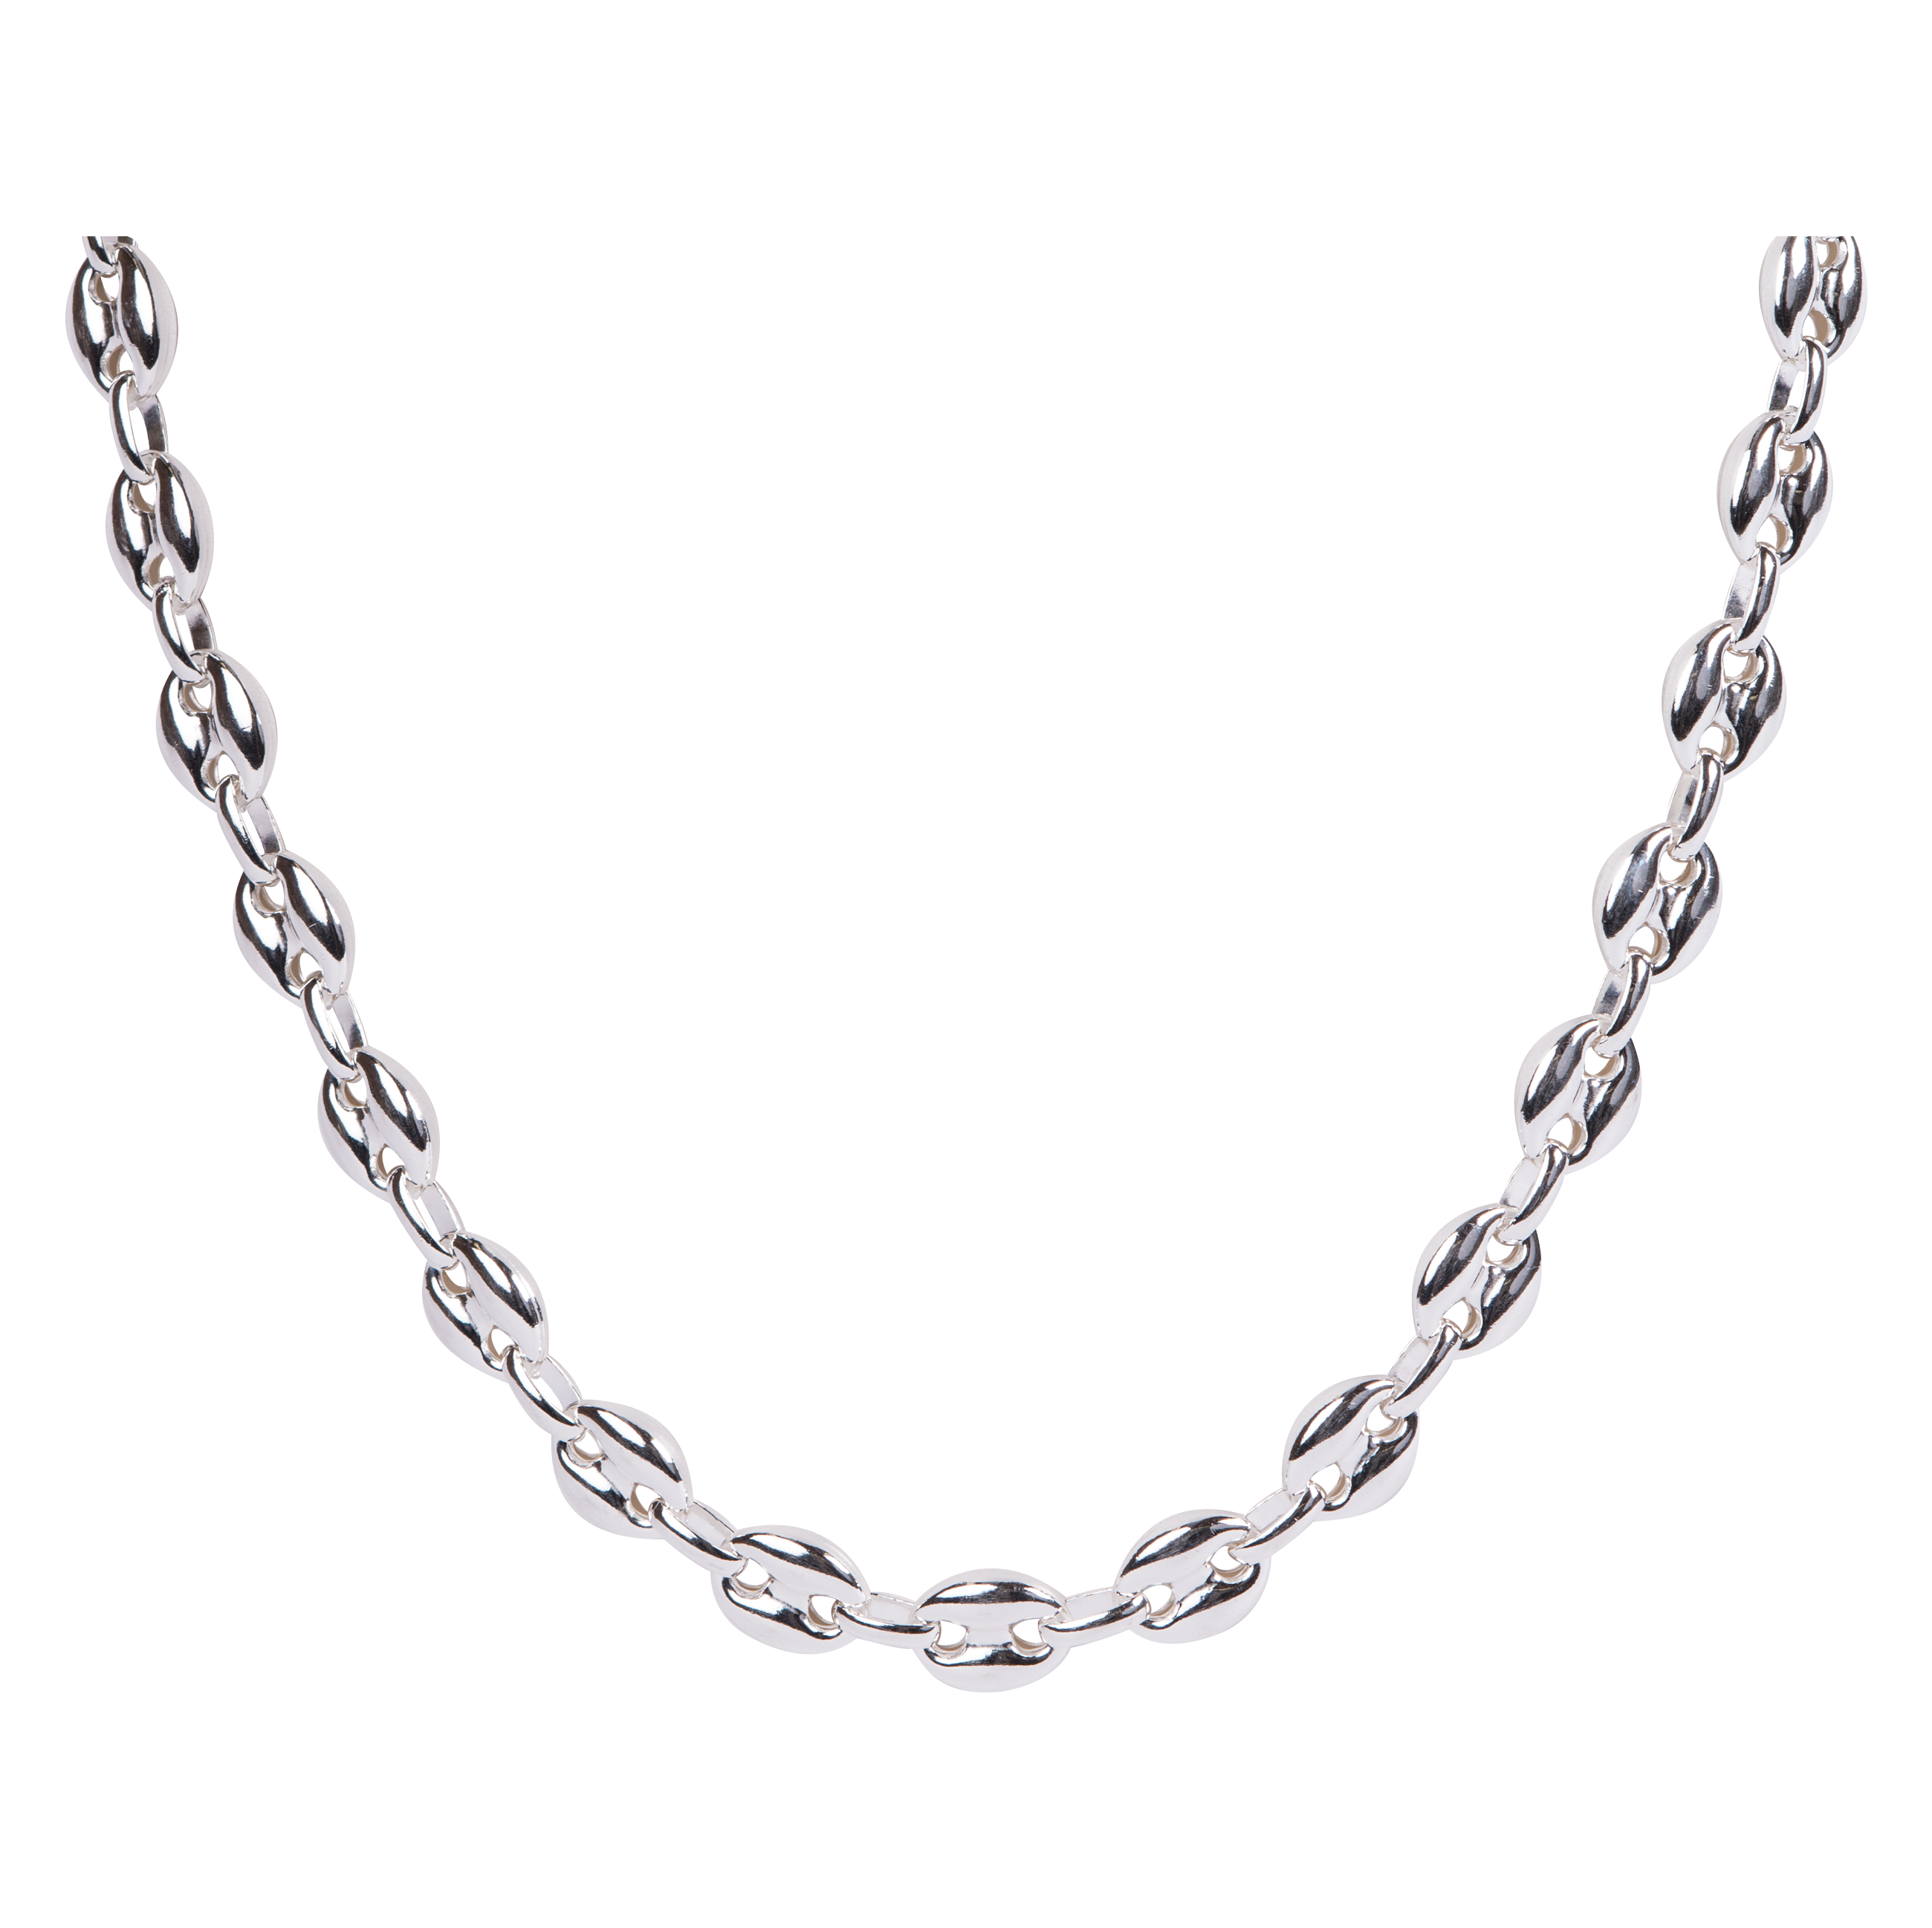 STERLING SILVER PUFFY GUCCI CHAIN.